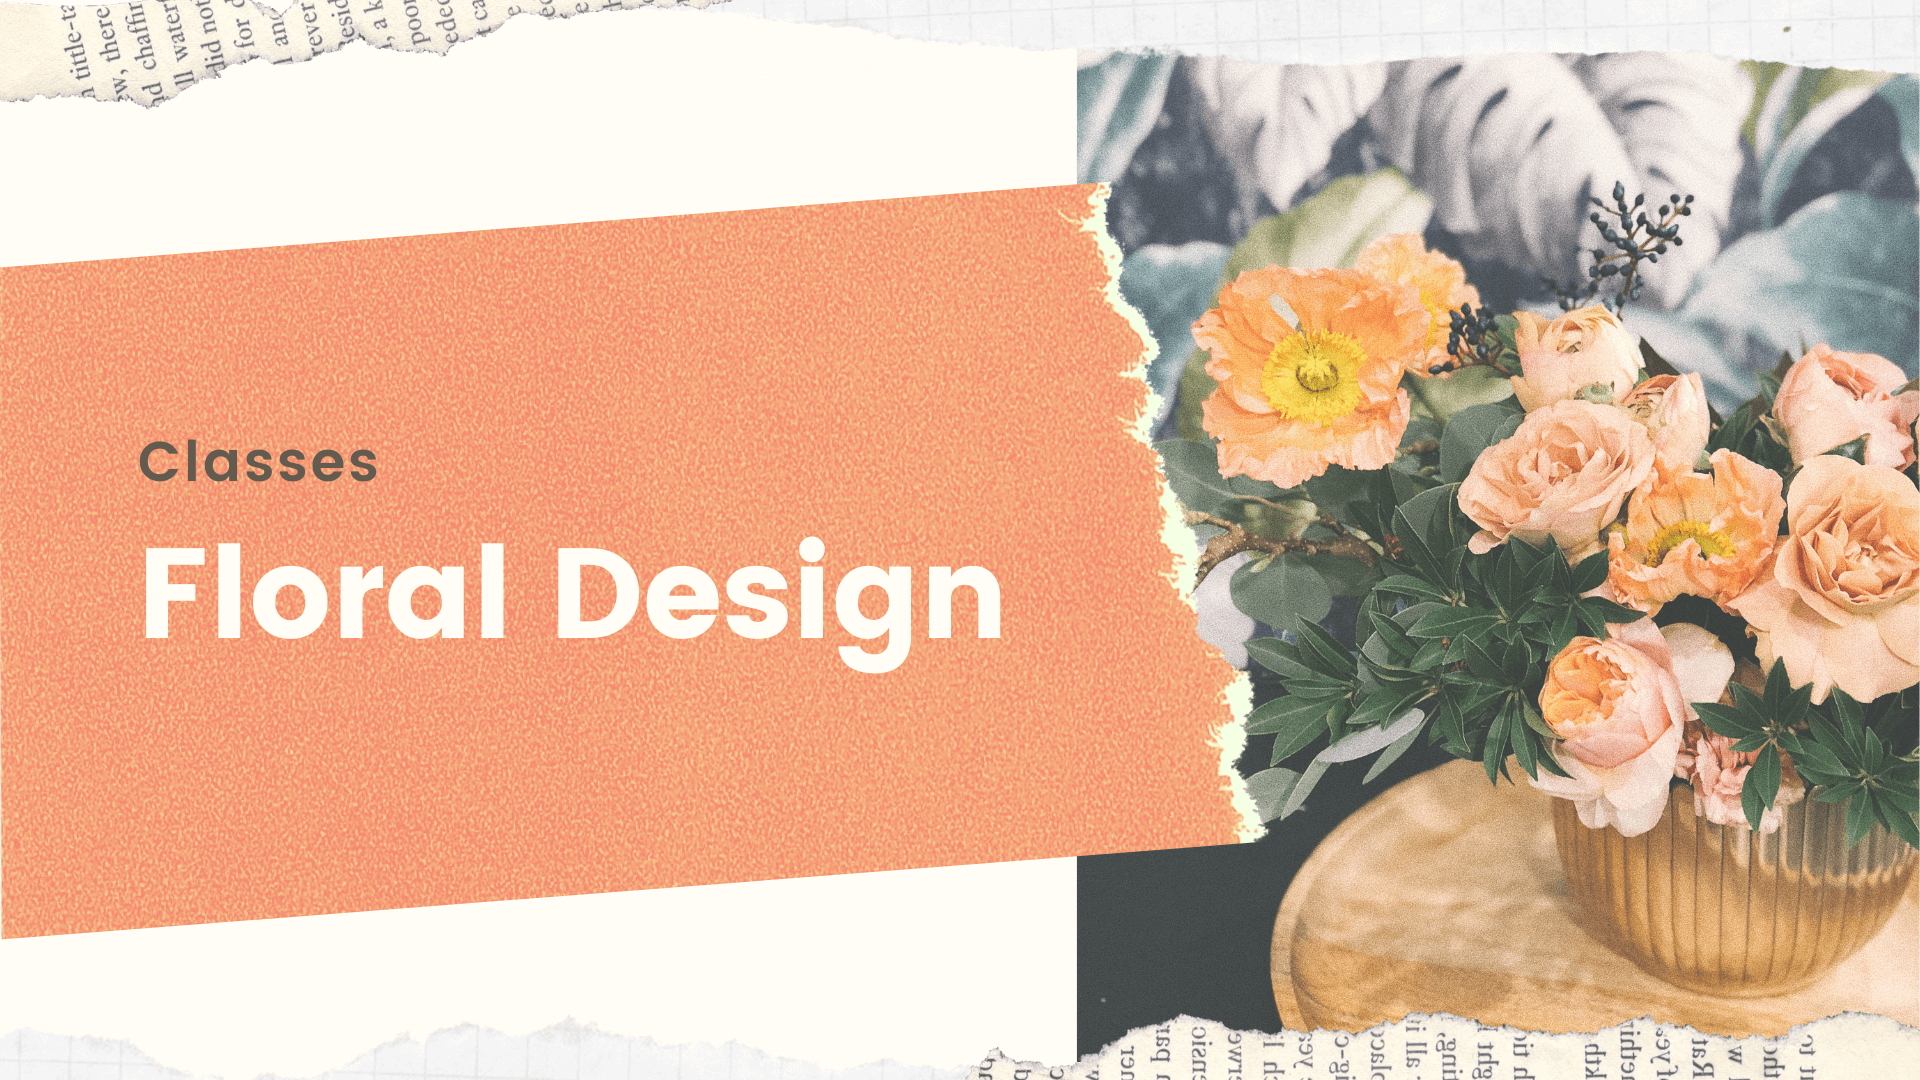 6 Best Floral Design Classes and Courses - Learn Flower Arrangement Online